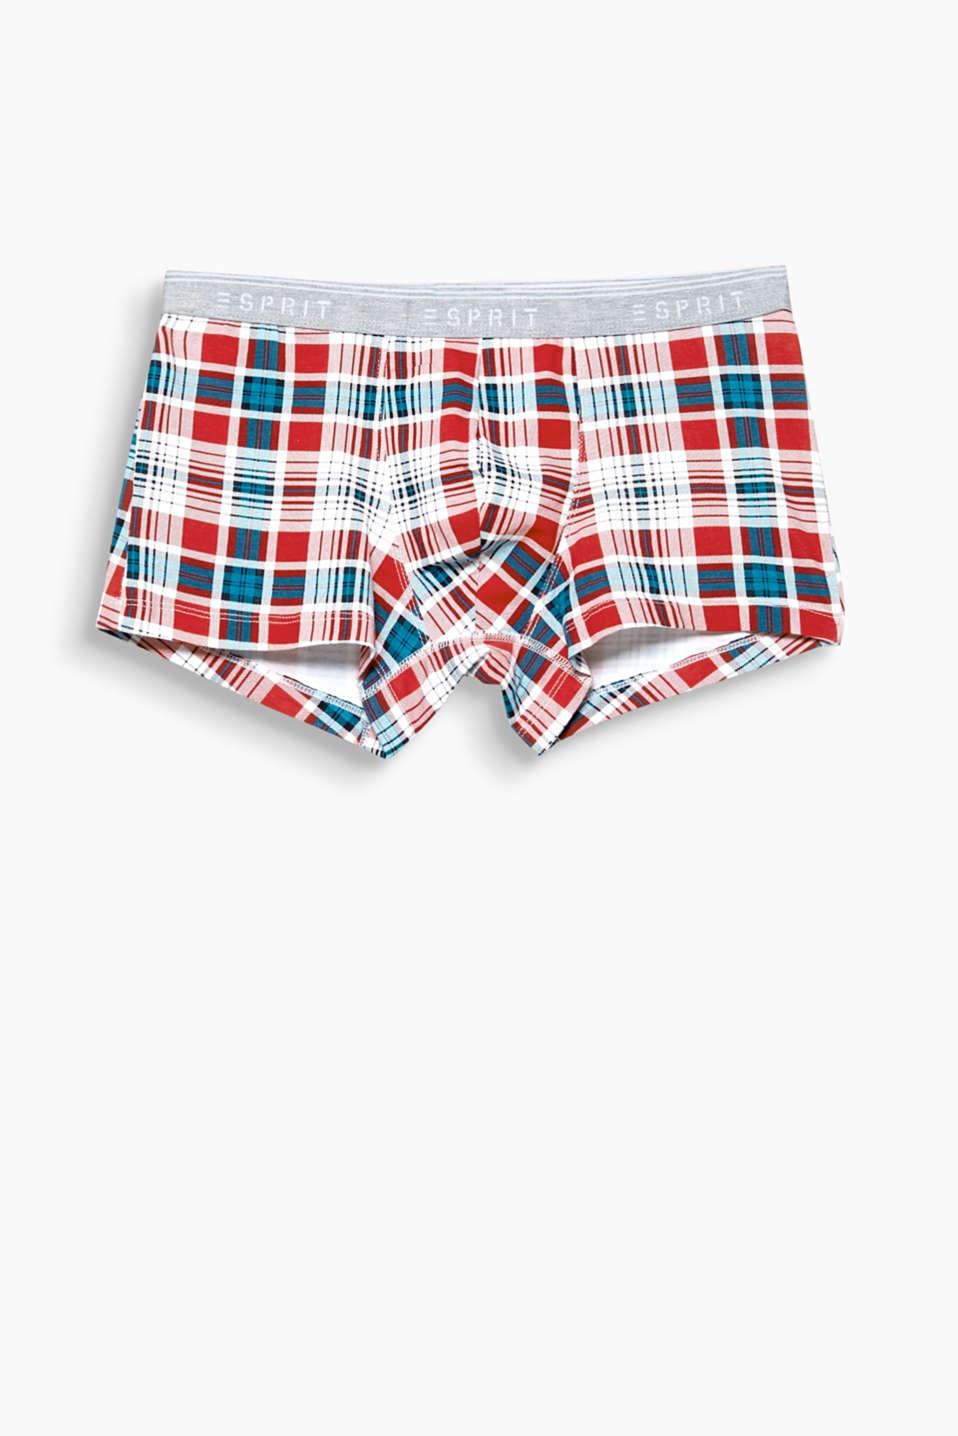 Colourful checks give these comfortable stretch cotton hipster shorts their fashionable look!